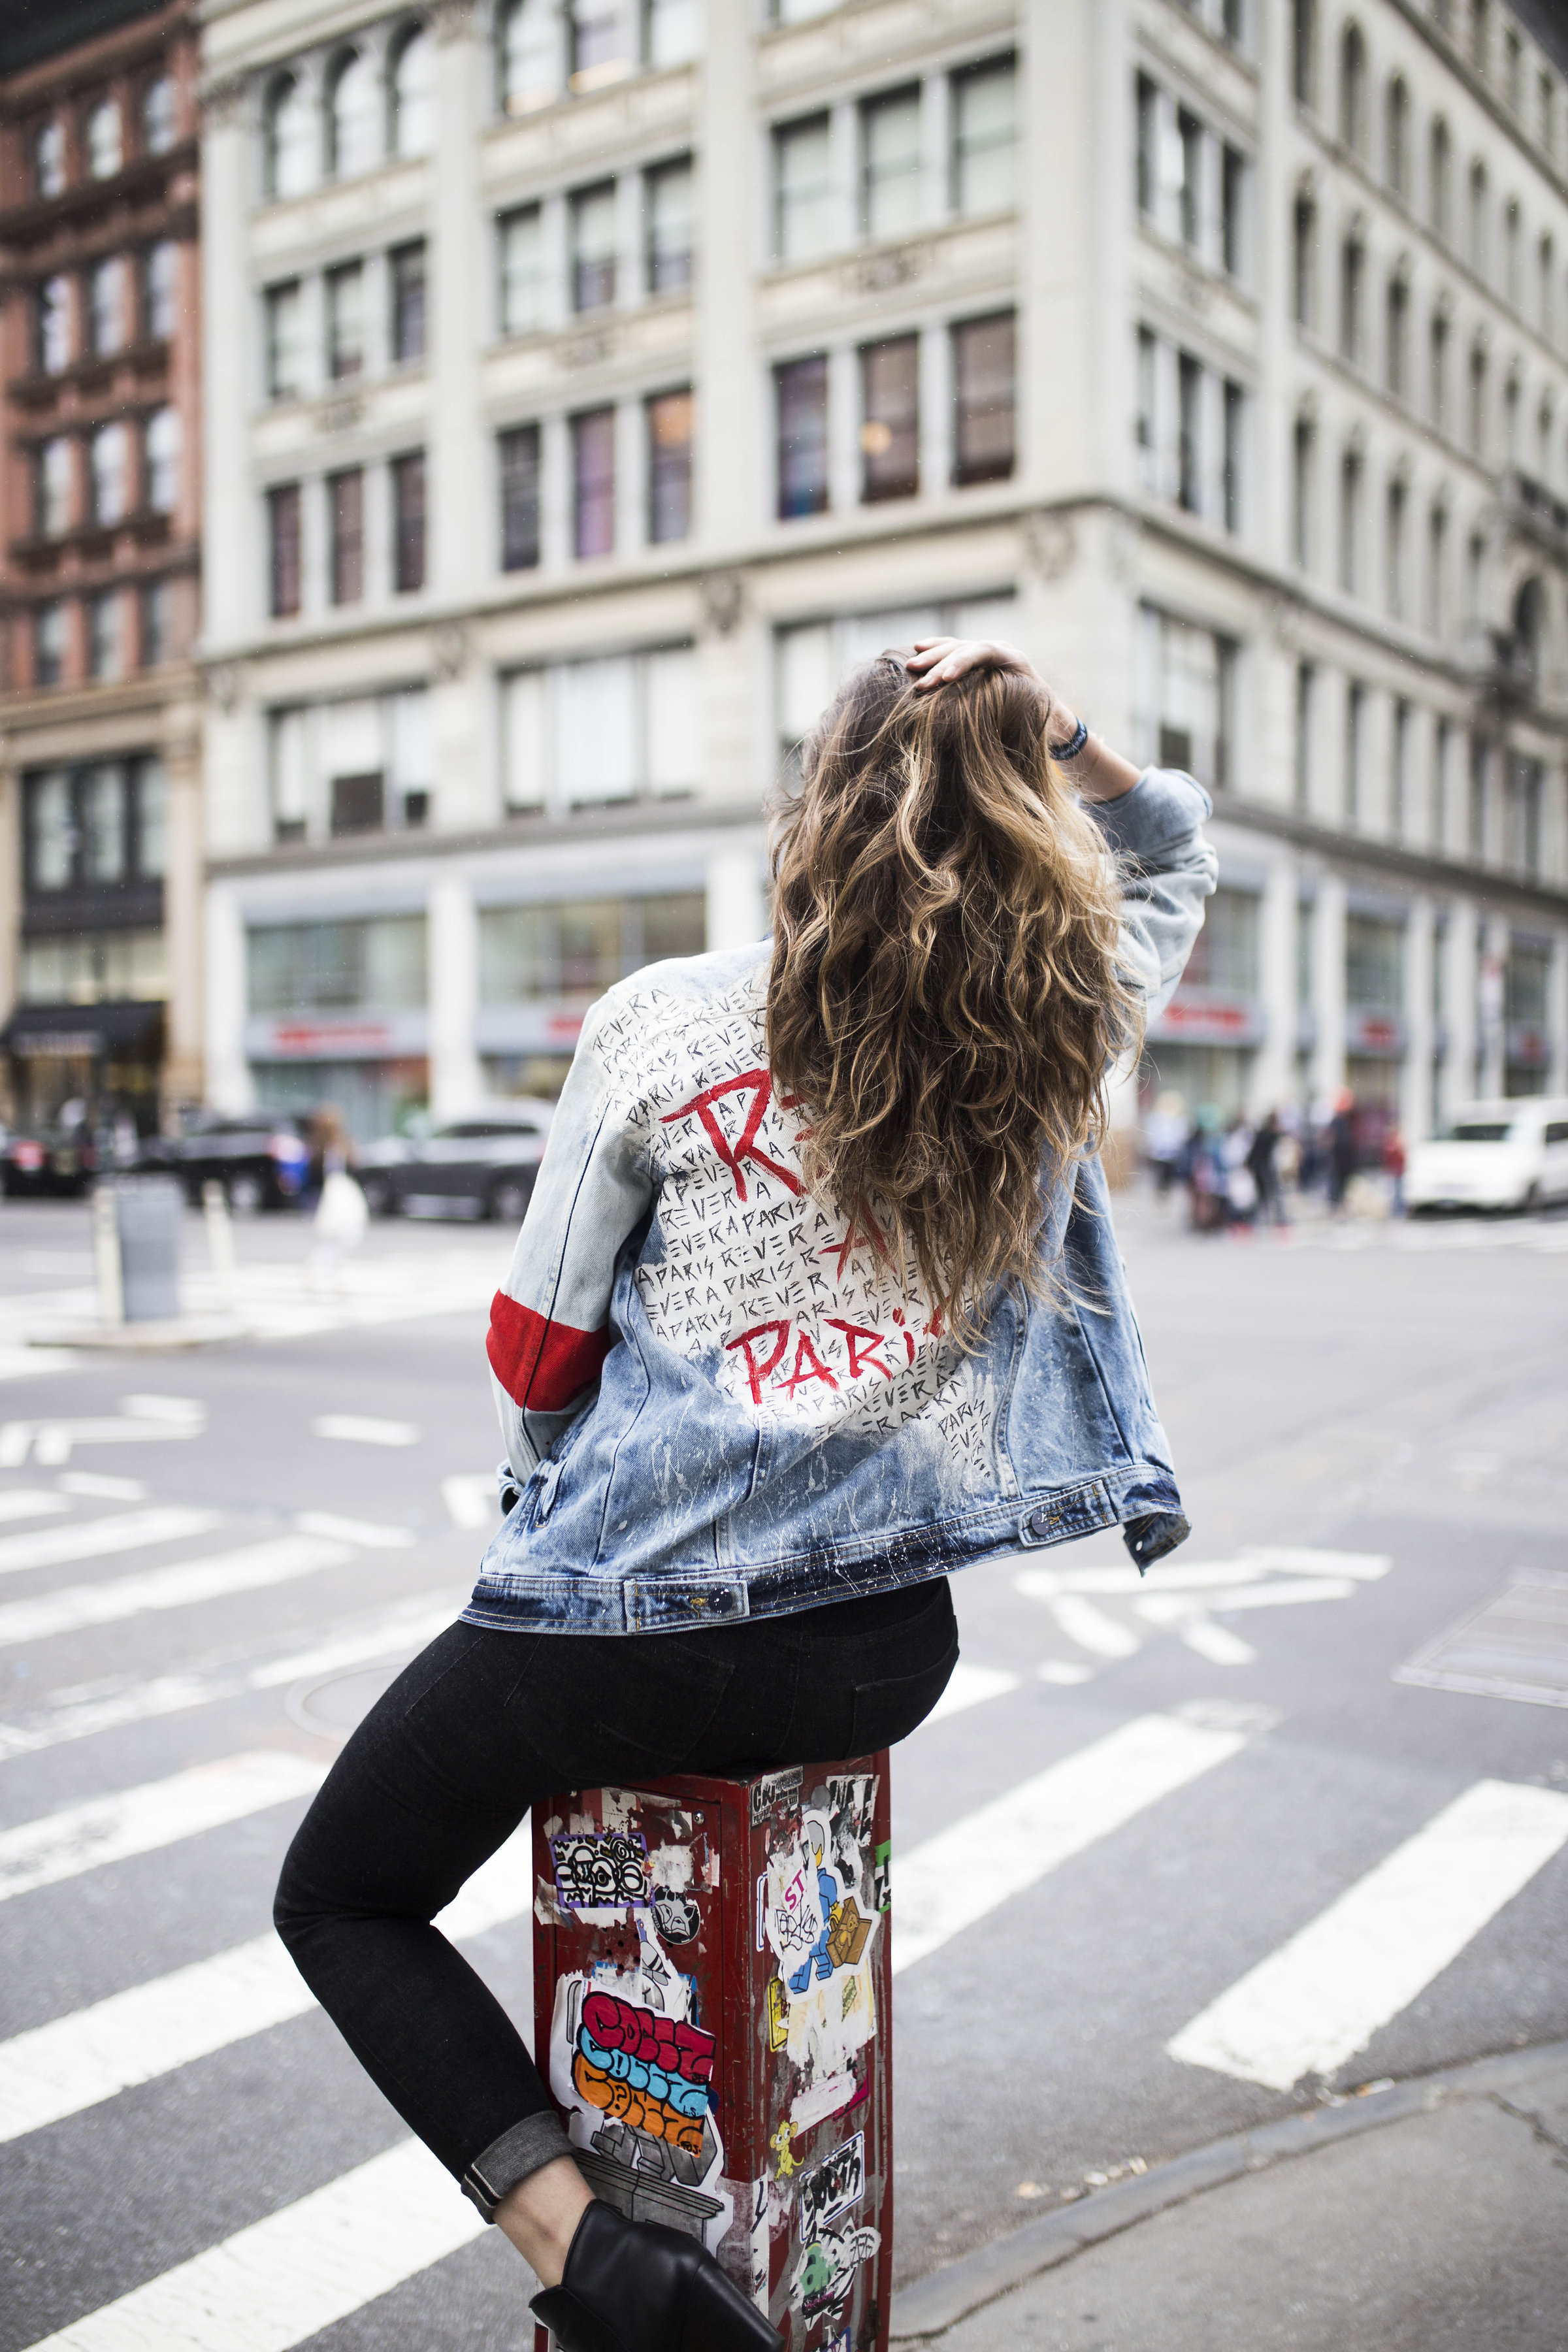 Jacket by  Denim Prive . Photo by  Andrew Downing